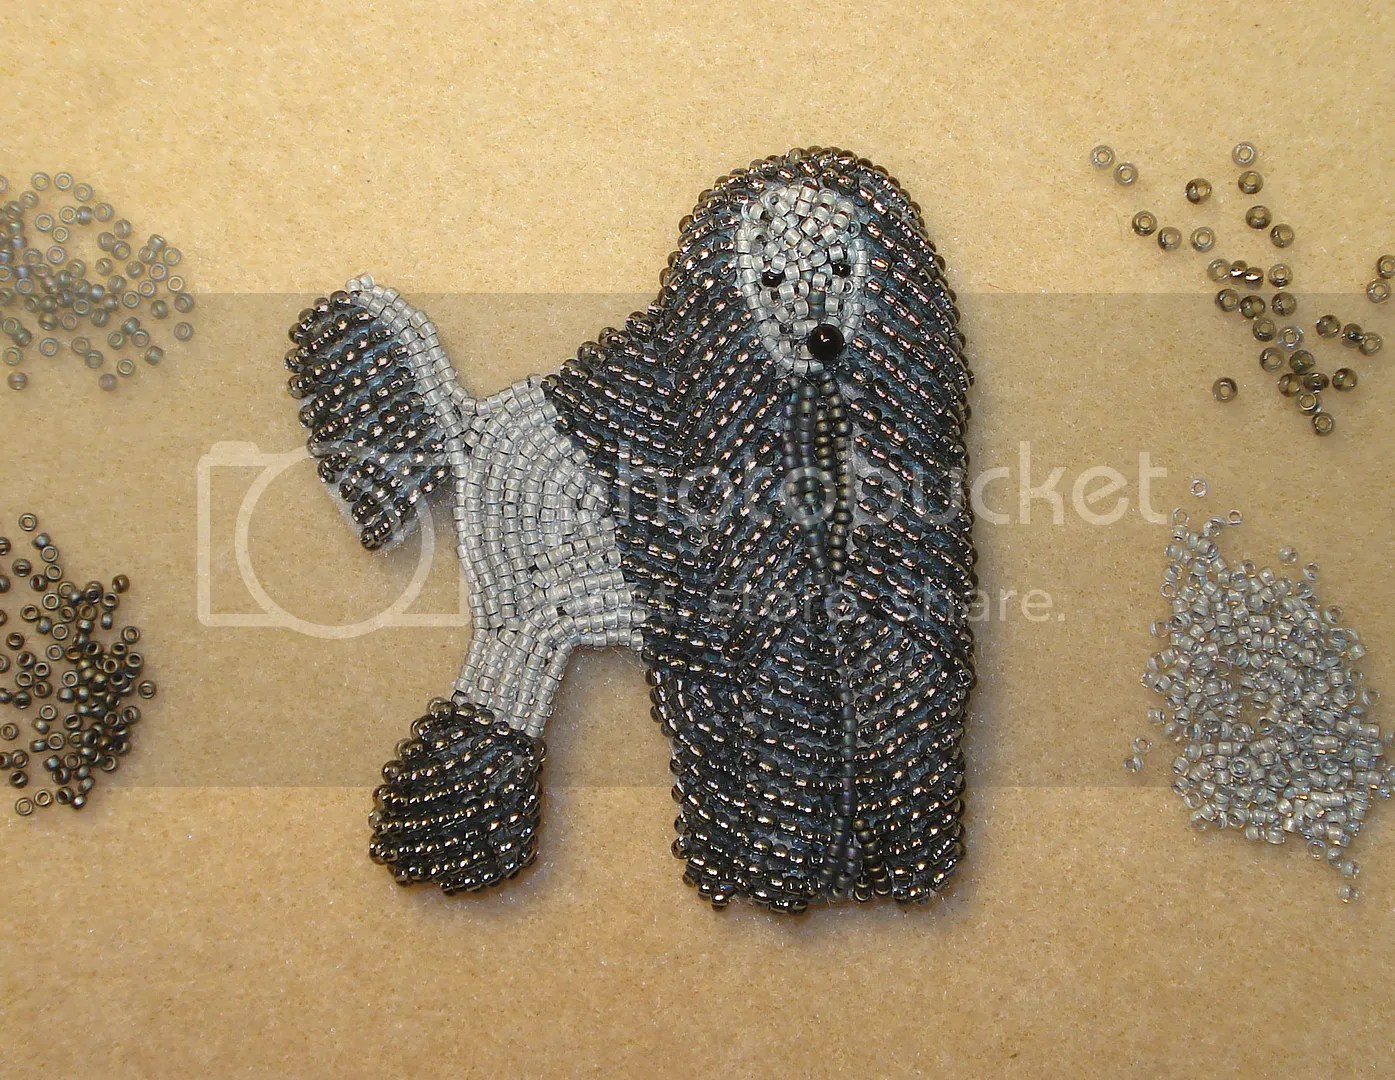 felt poodle bead embroidery seed beads beadwork dog collar etsy jewelry work in progress